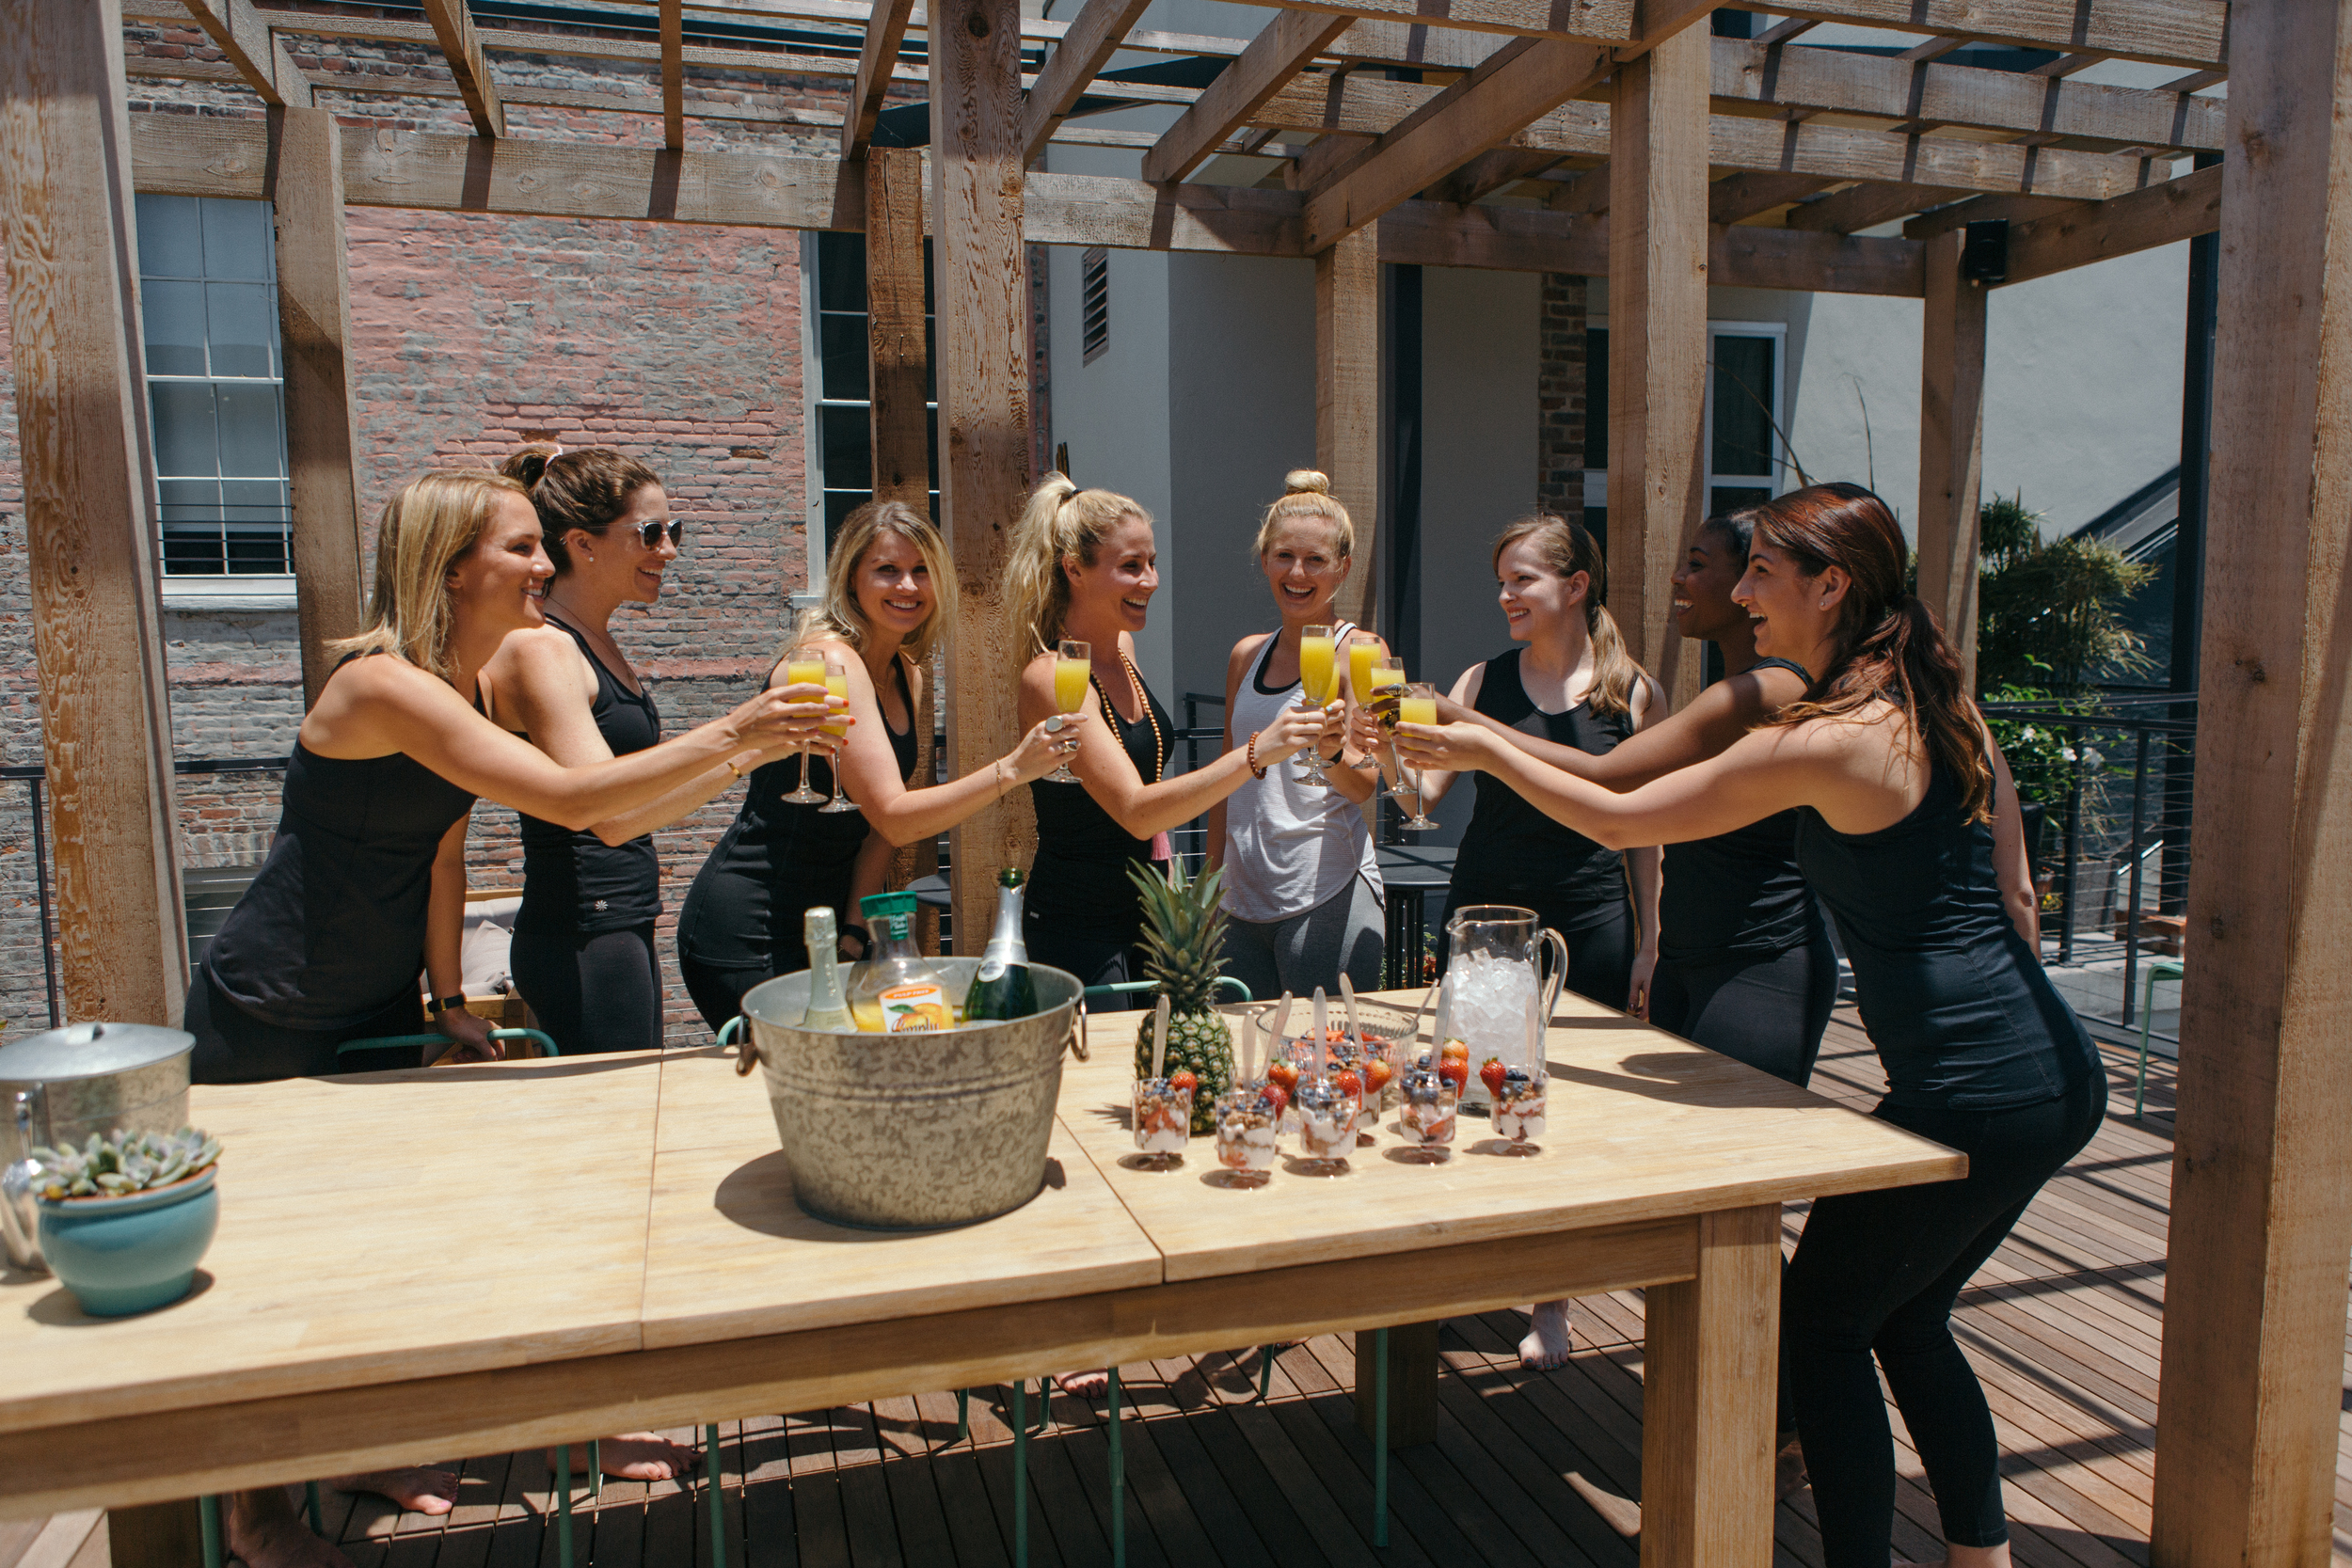 Bride Tribe Yoga Bachelorette Party Yoga Brunch Group Cheers.jpg